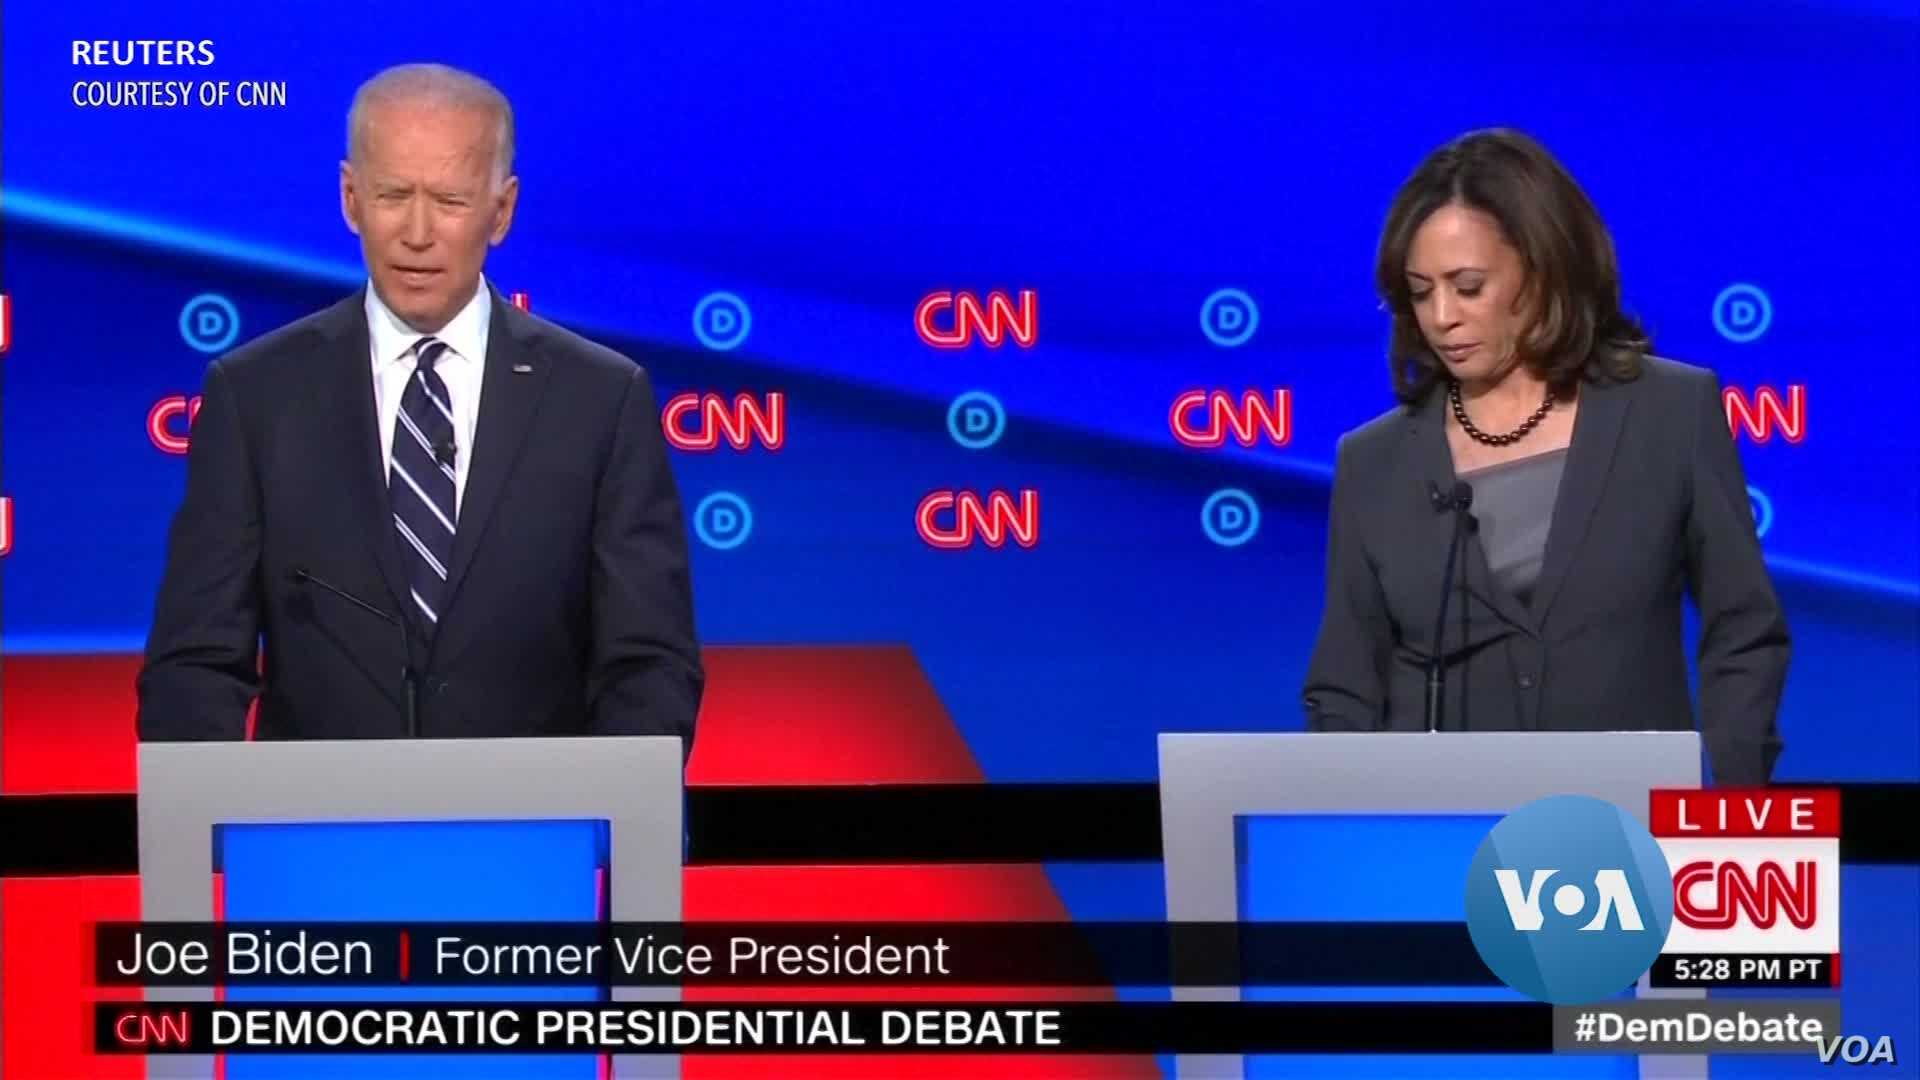 Rivals Go After Biden in Democratic Debate